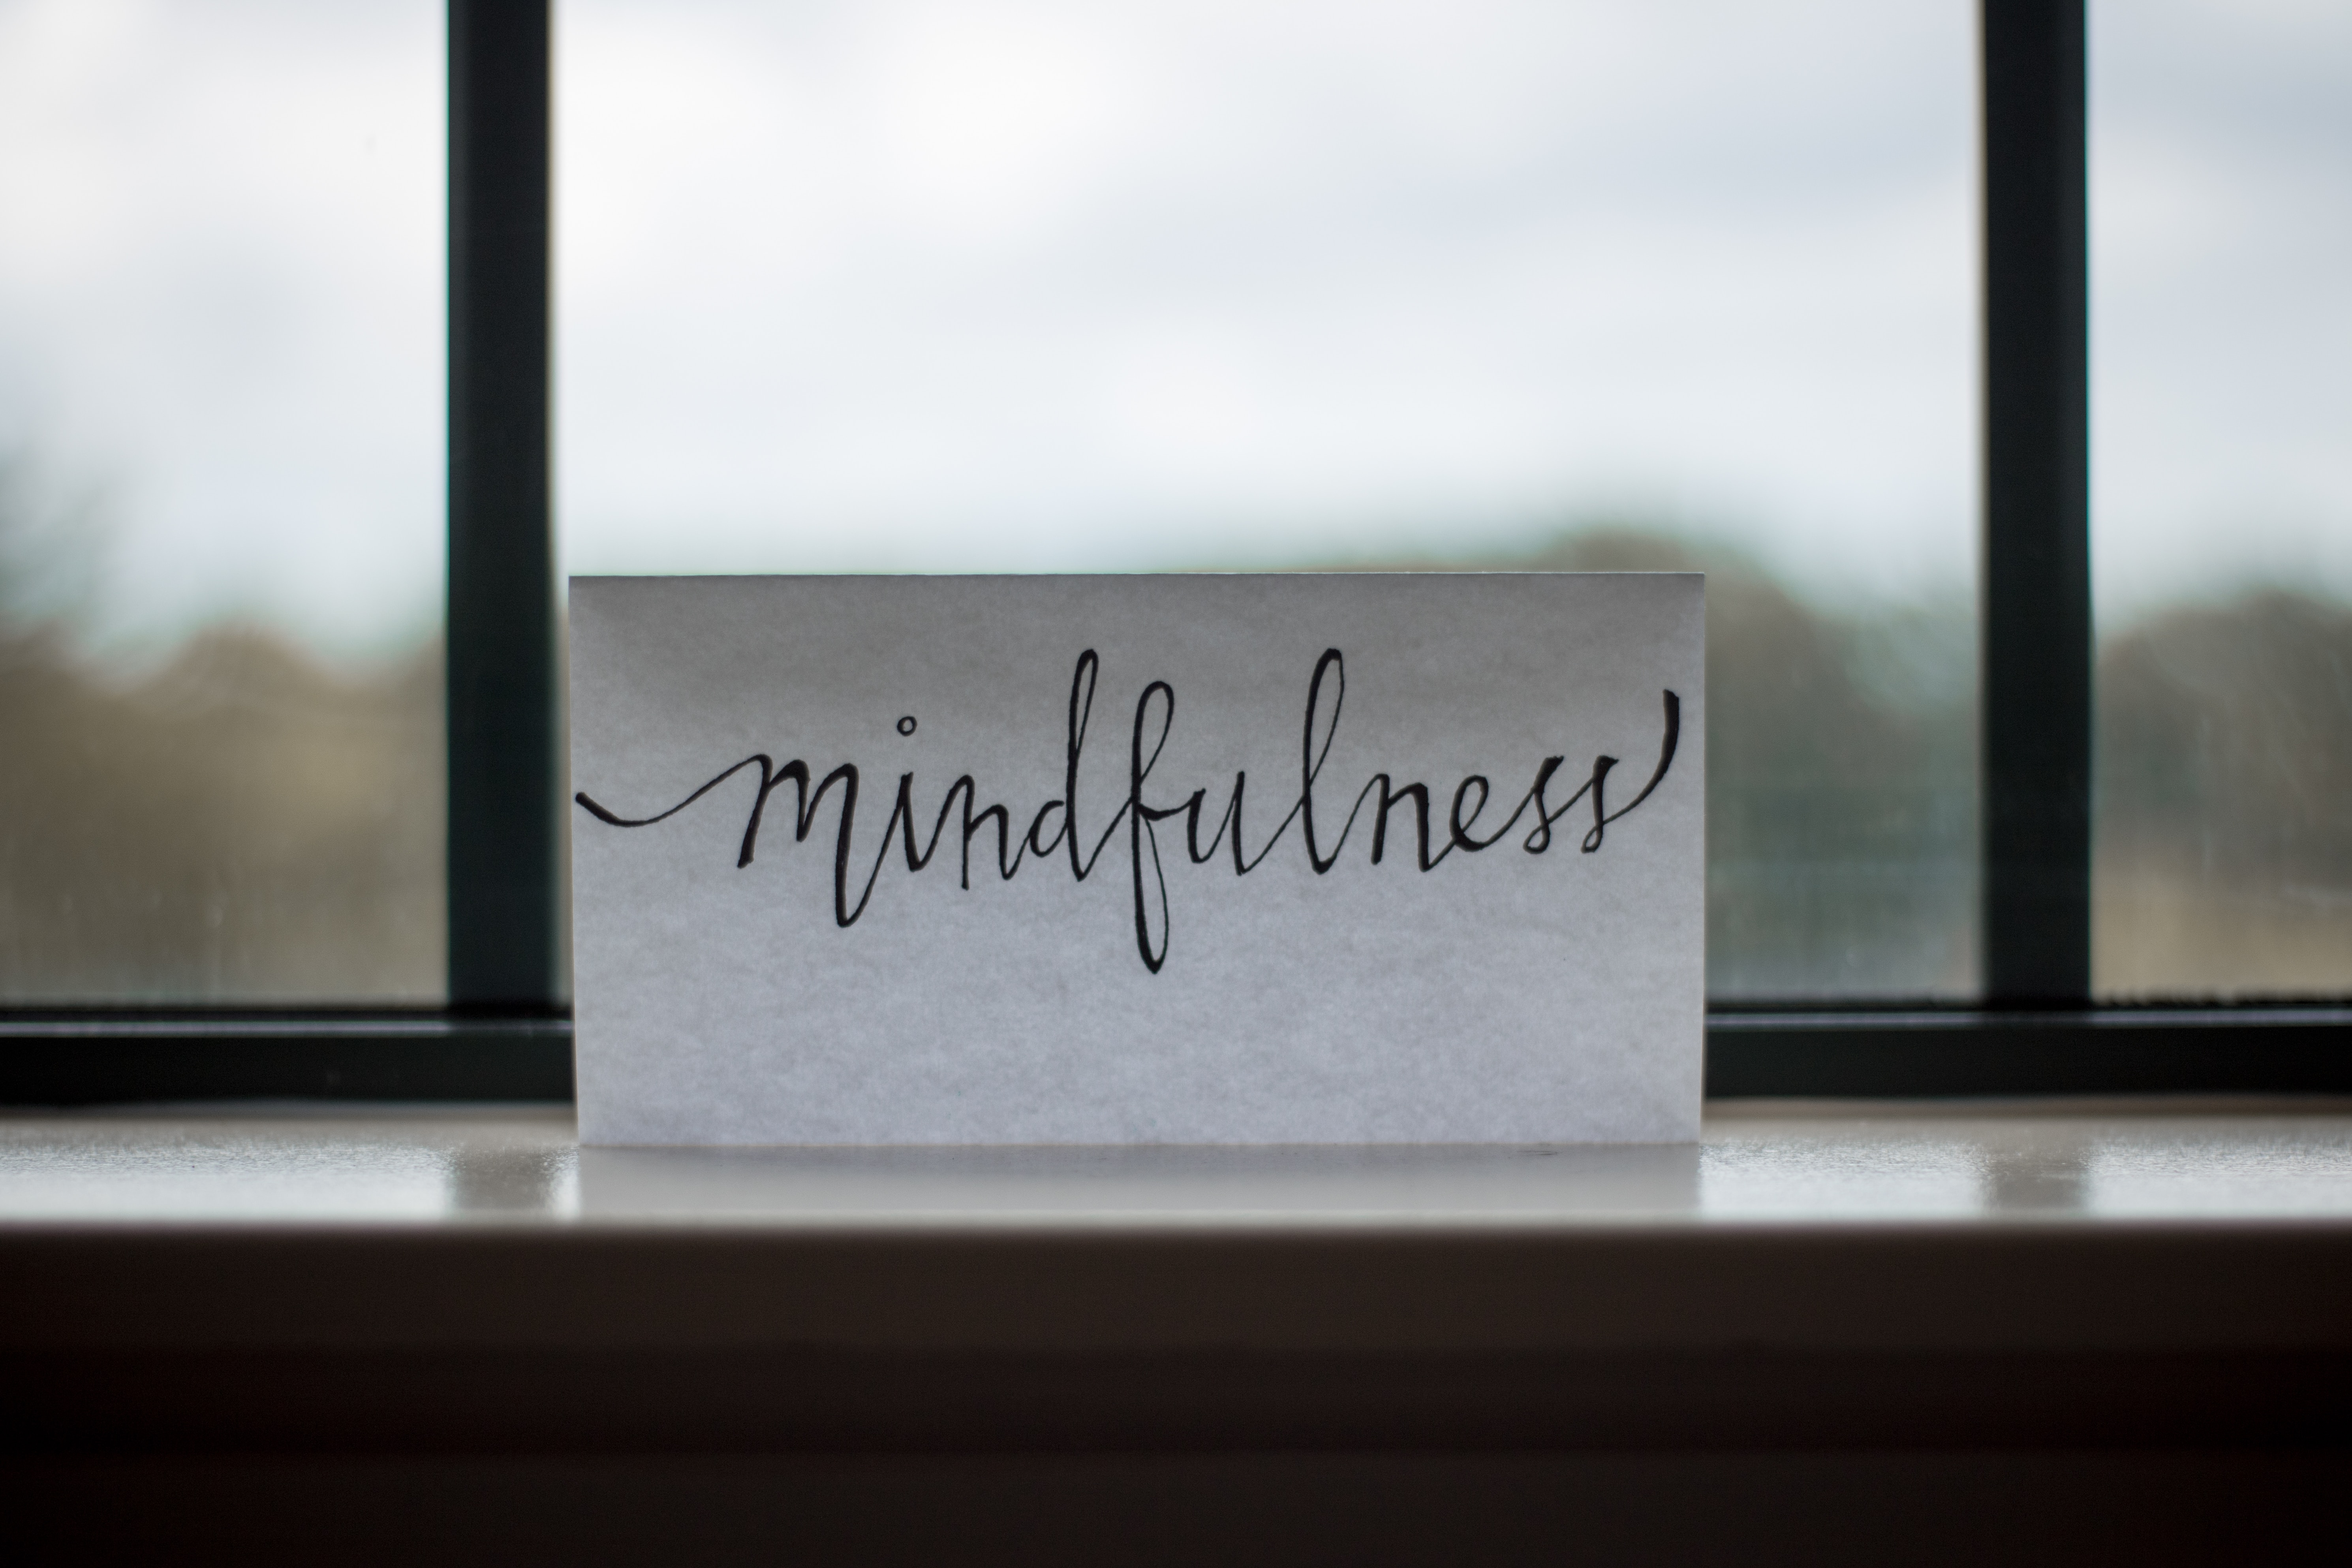 Mental Health Misconceptions & The Benefits of Practicing Mindfulness